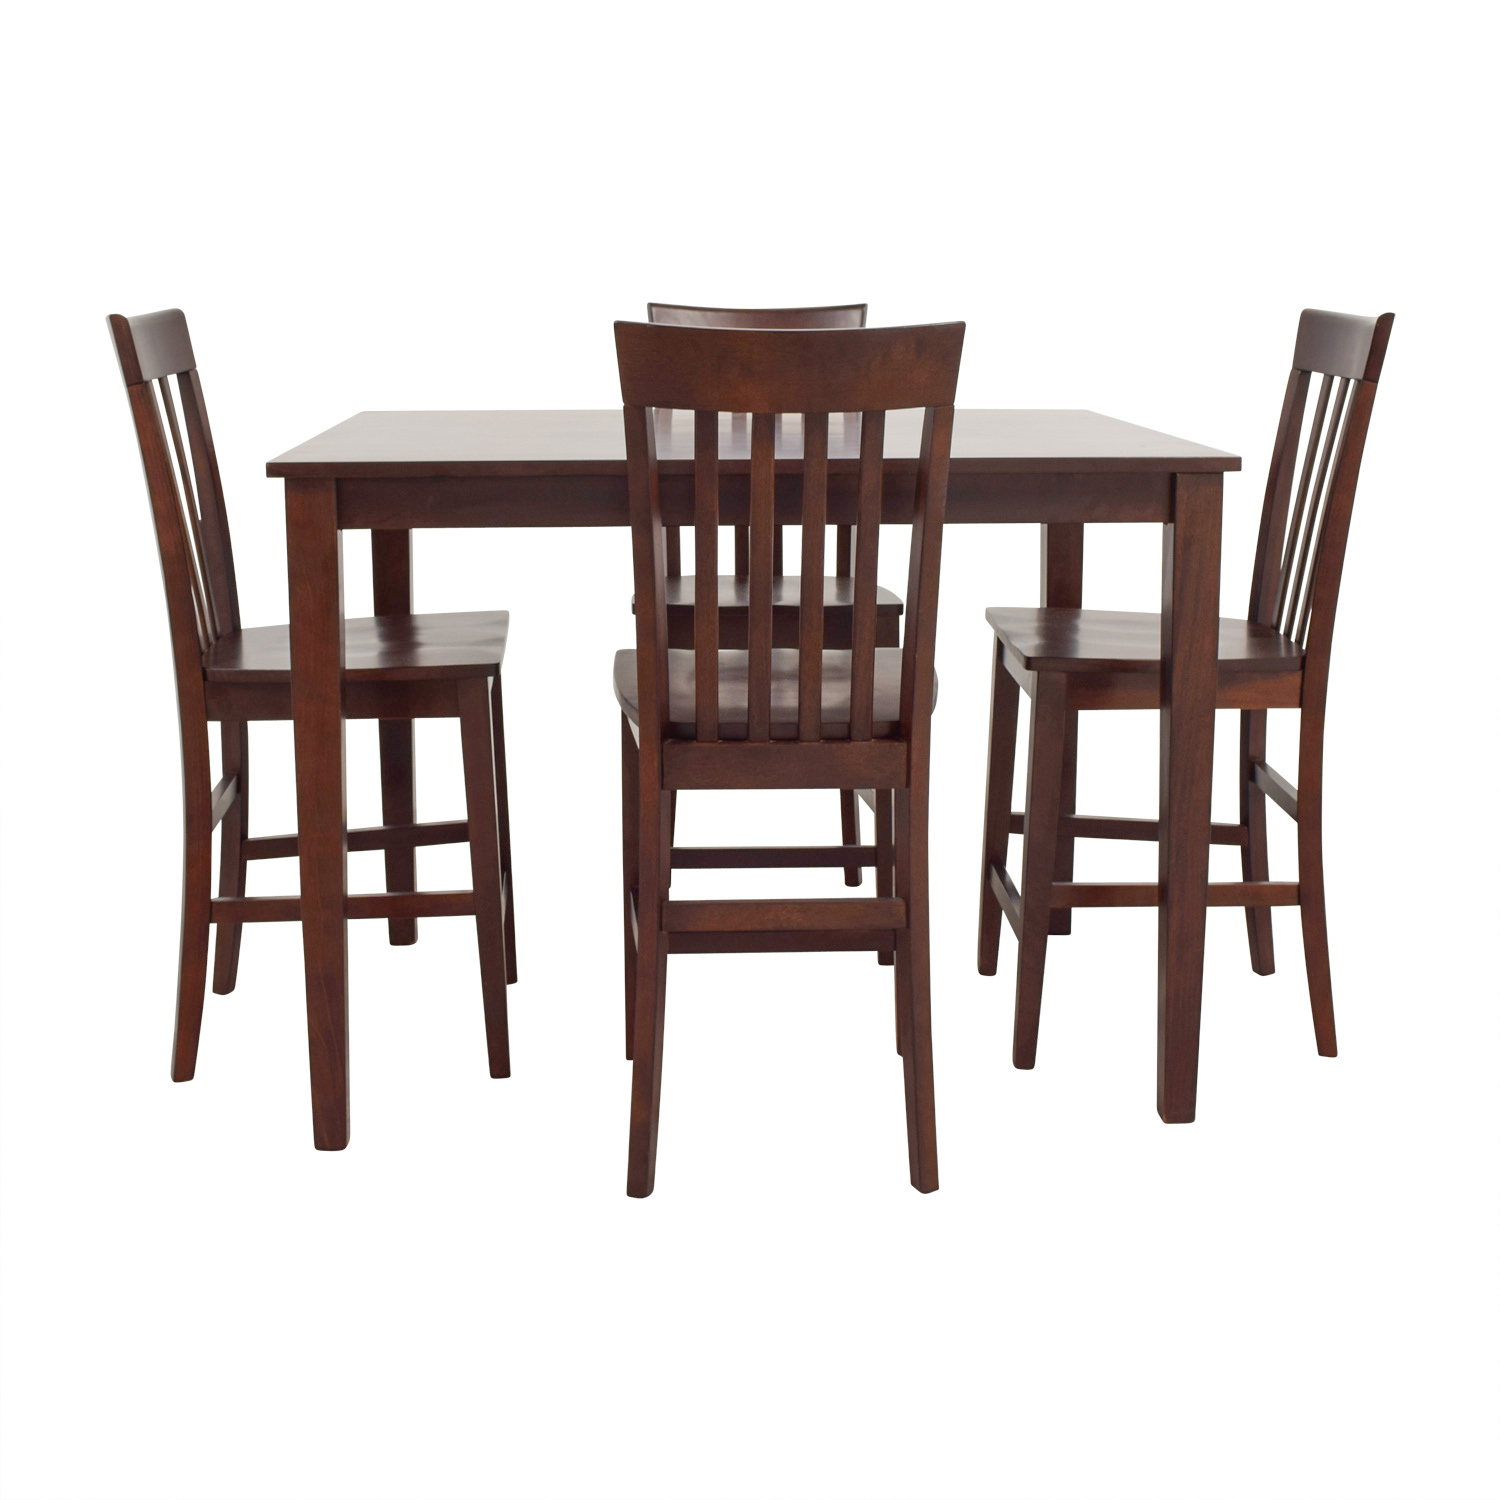 Raymour & Flanigan Bellanest Counter Height Dining Set sale